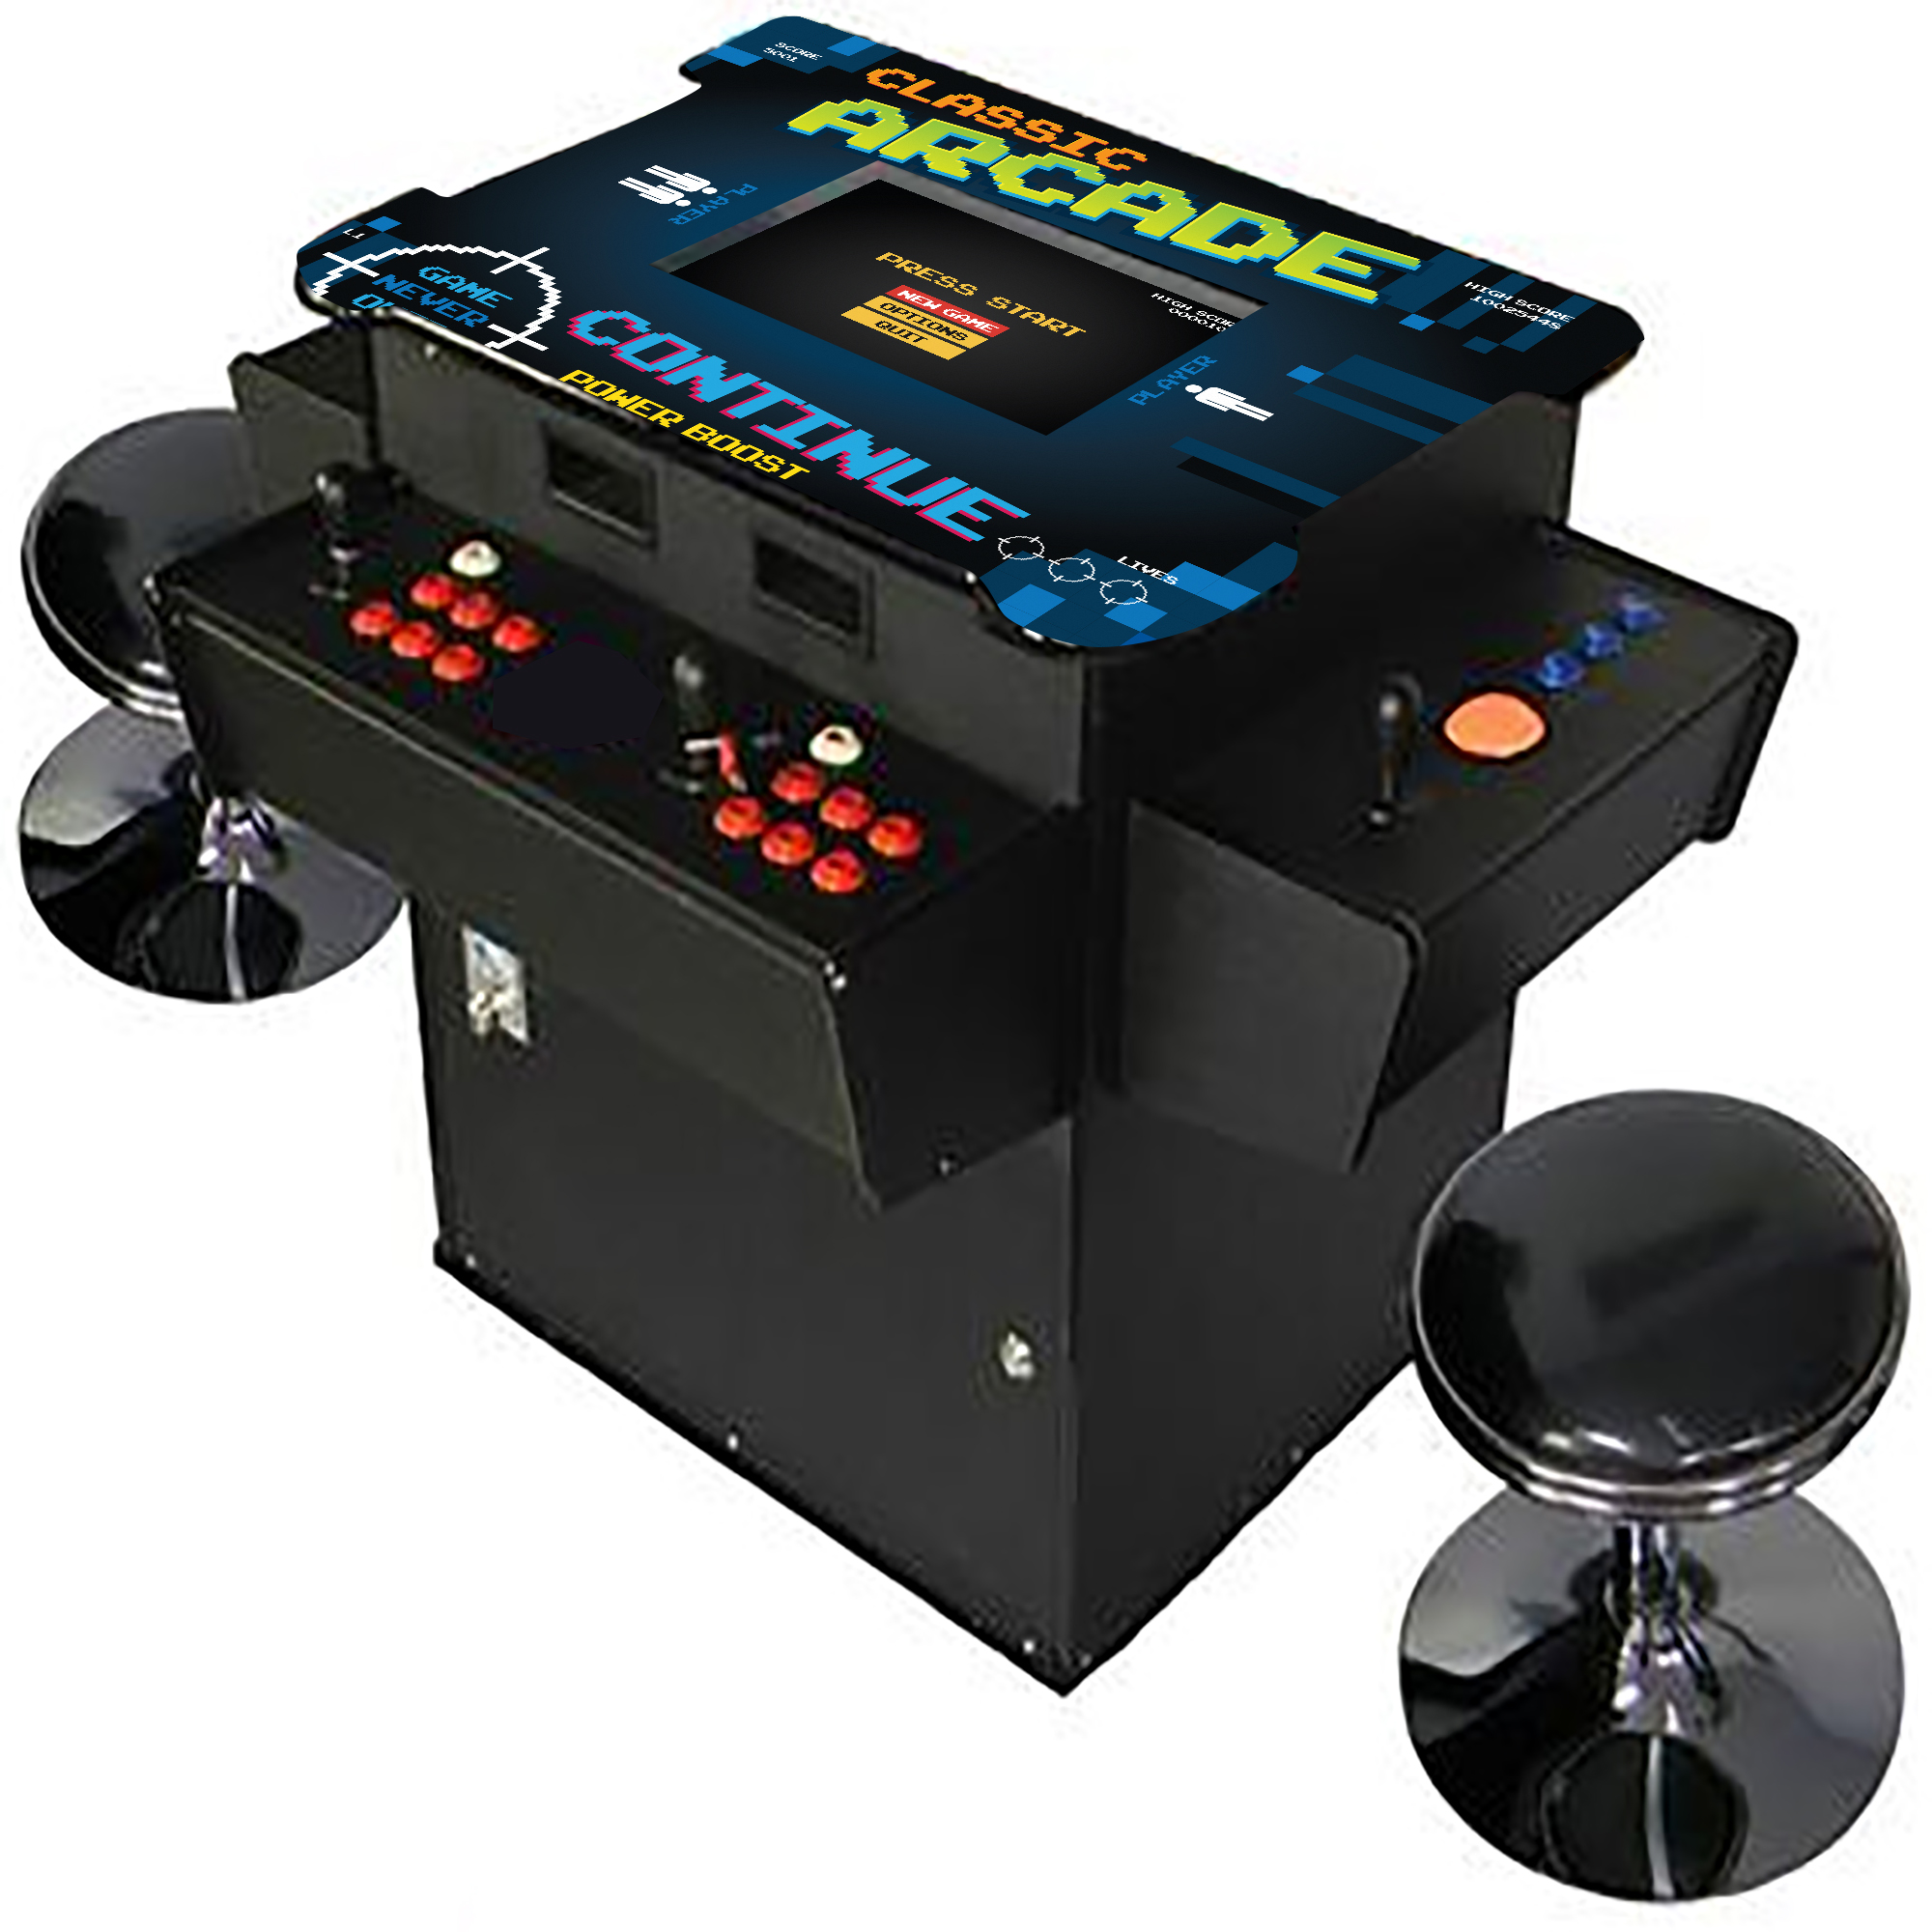 Creative Arcades Full-Size Commercial Grade Cocktail Arcade Machine | Trackball | Three-Sided | 1162 Classic Games | 4 Sanwa Joysticks | 2 Stools | 3-Year Warranty | Square Glass Top